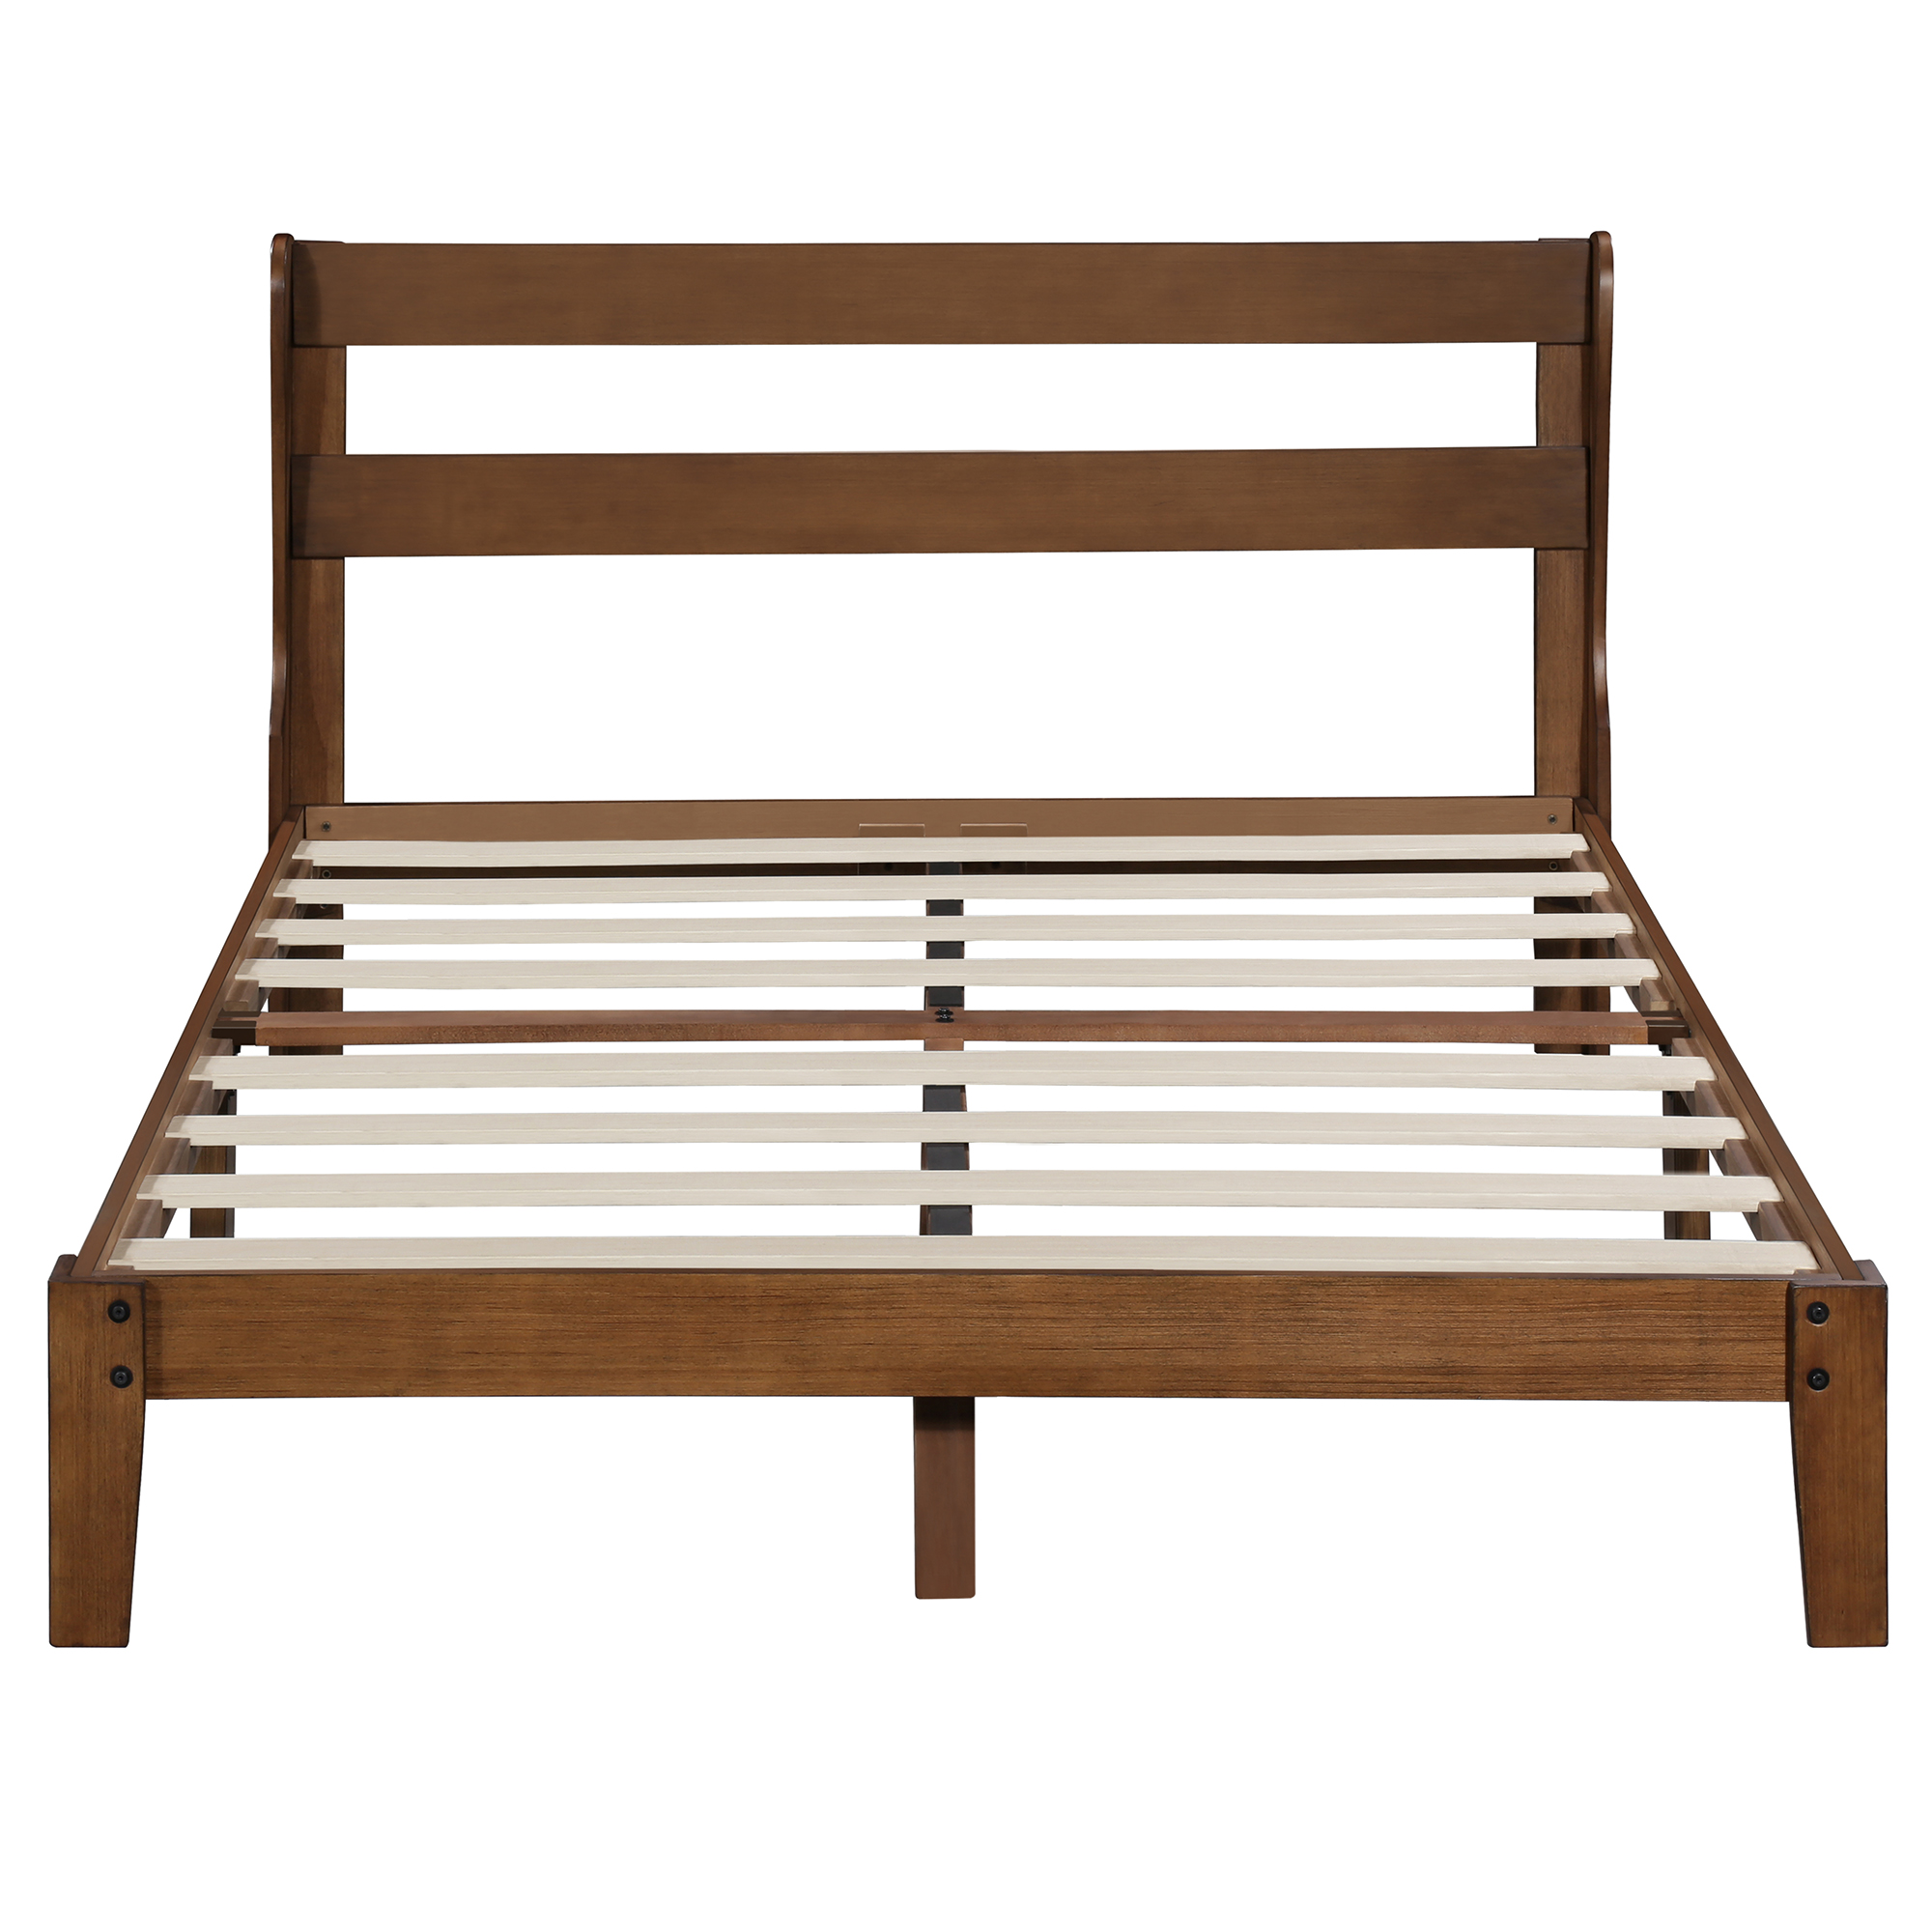 GranRest 12 inch Classic Wooden Platform Bed with Headboard, Full